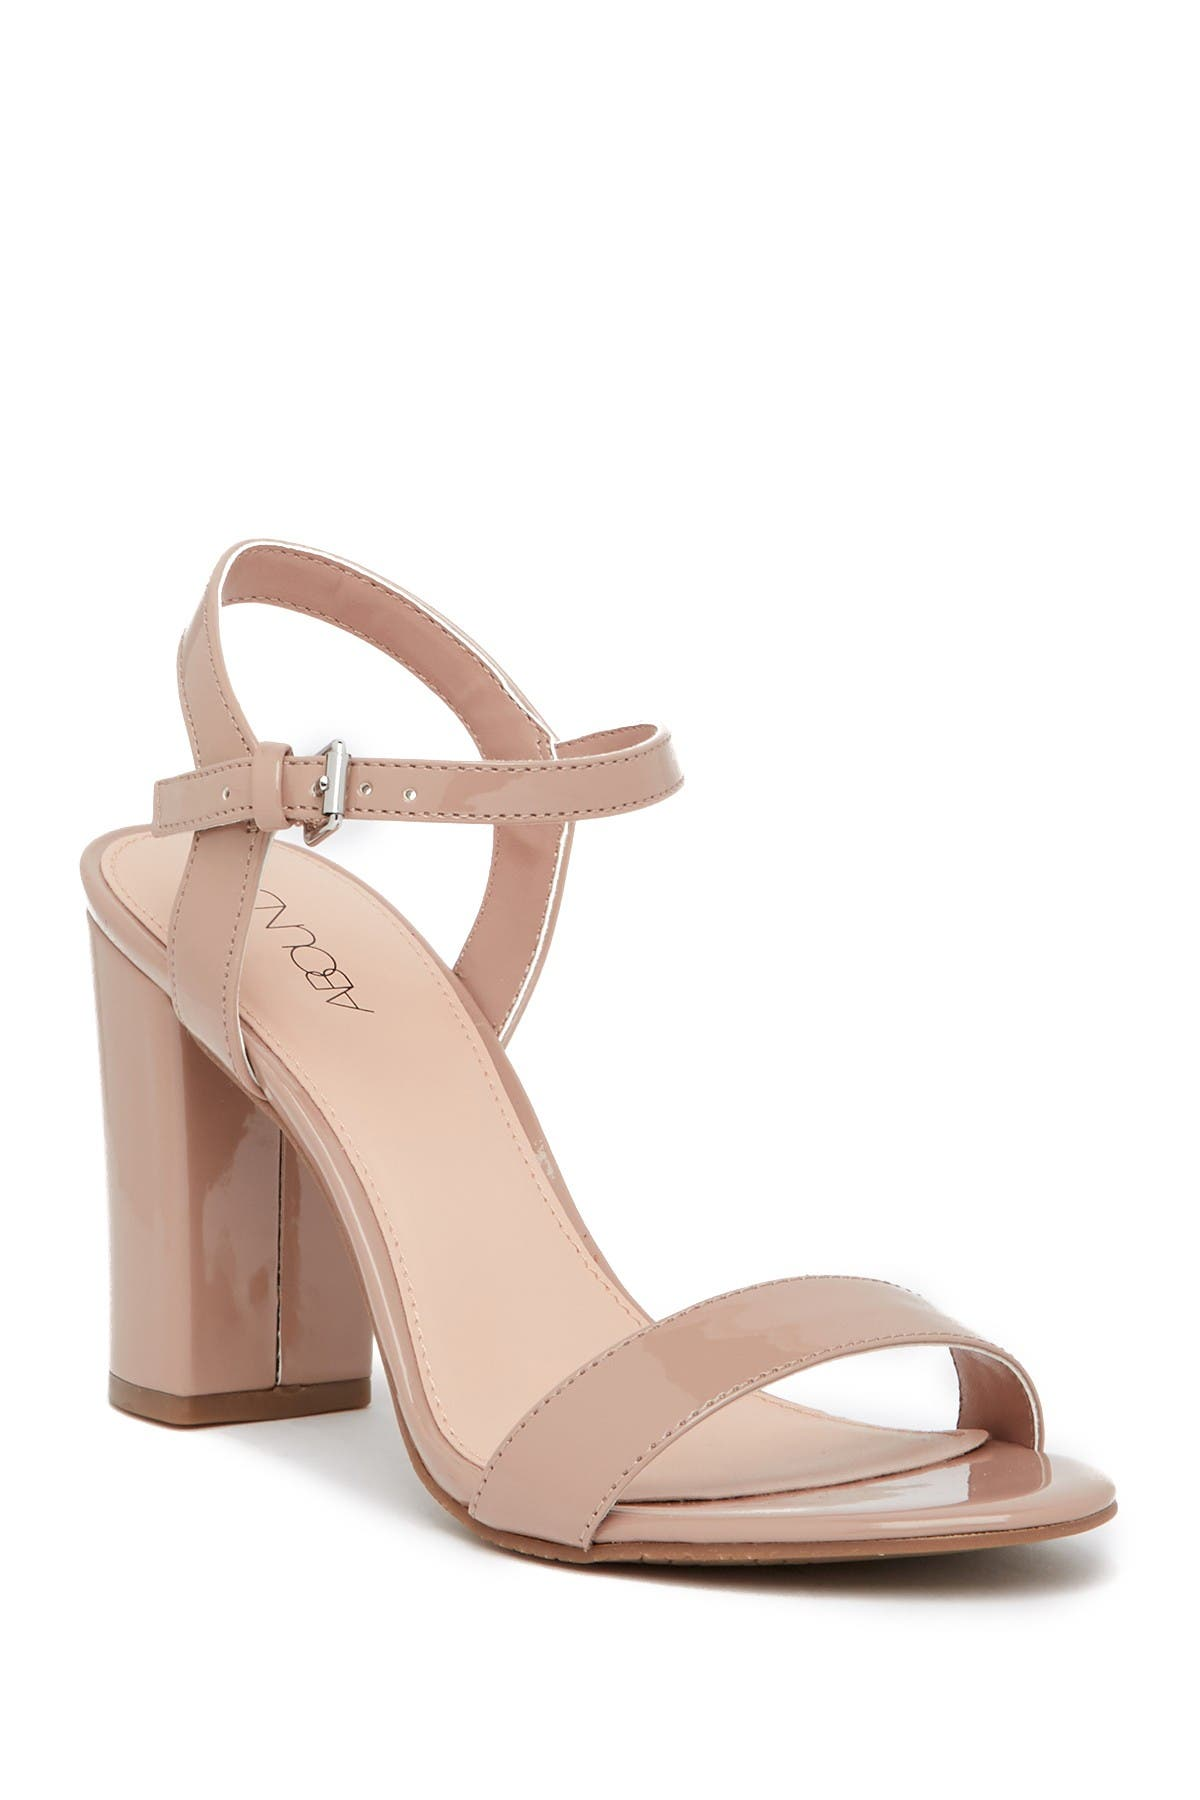 Image of Abound Steph Block Heel Sandal